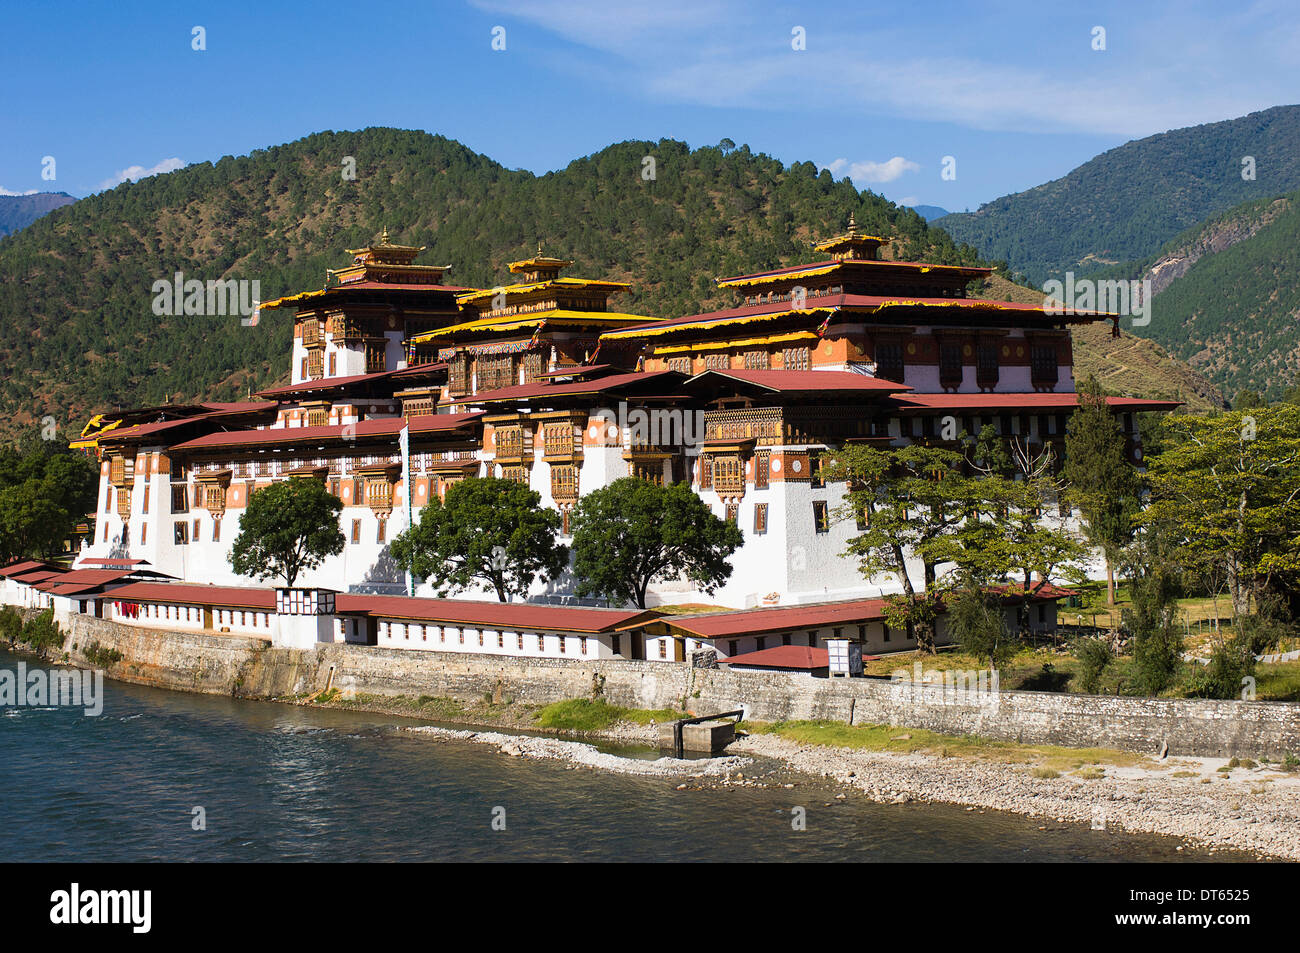 Bhutan, Punakha Dzong beside Mo Chhu River. The administrative centre of the region and the old capital housing sacred relics. - Stock Image